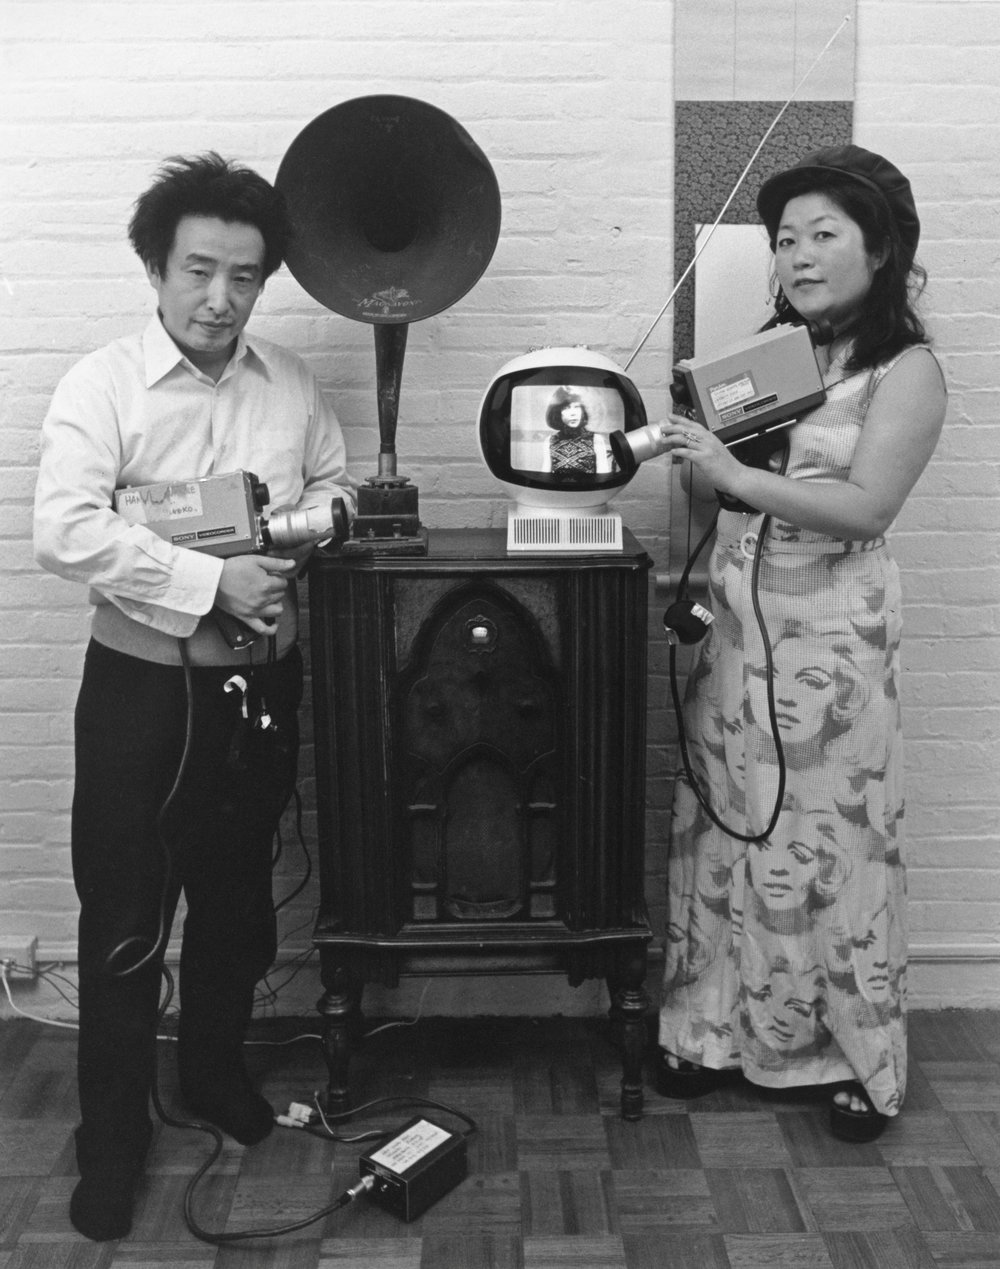 Tom Haar, Shigeko Kubota and Nam June Paik, 1974. ©Tom Haar